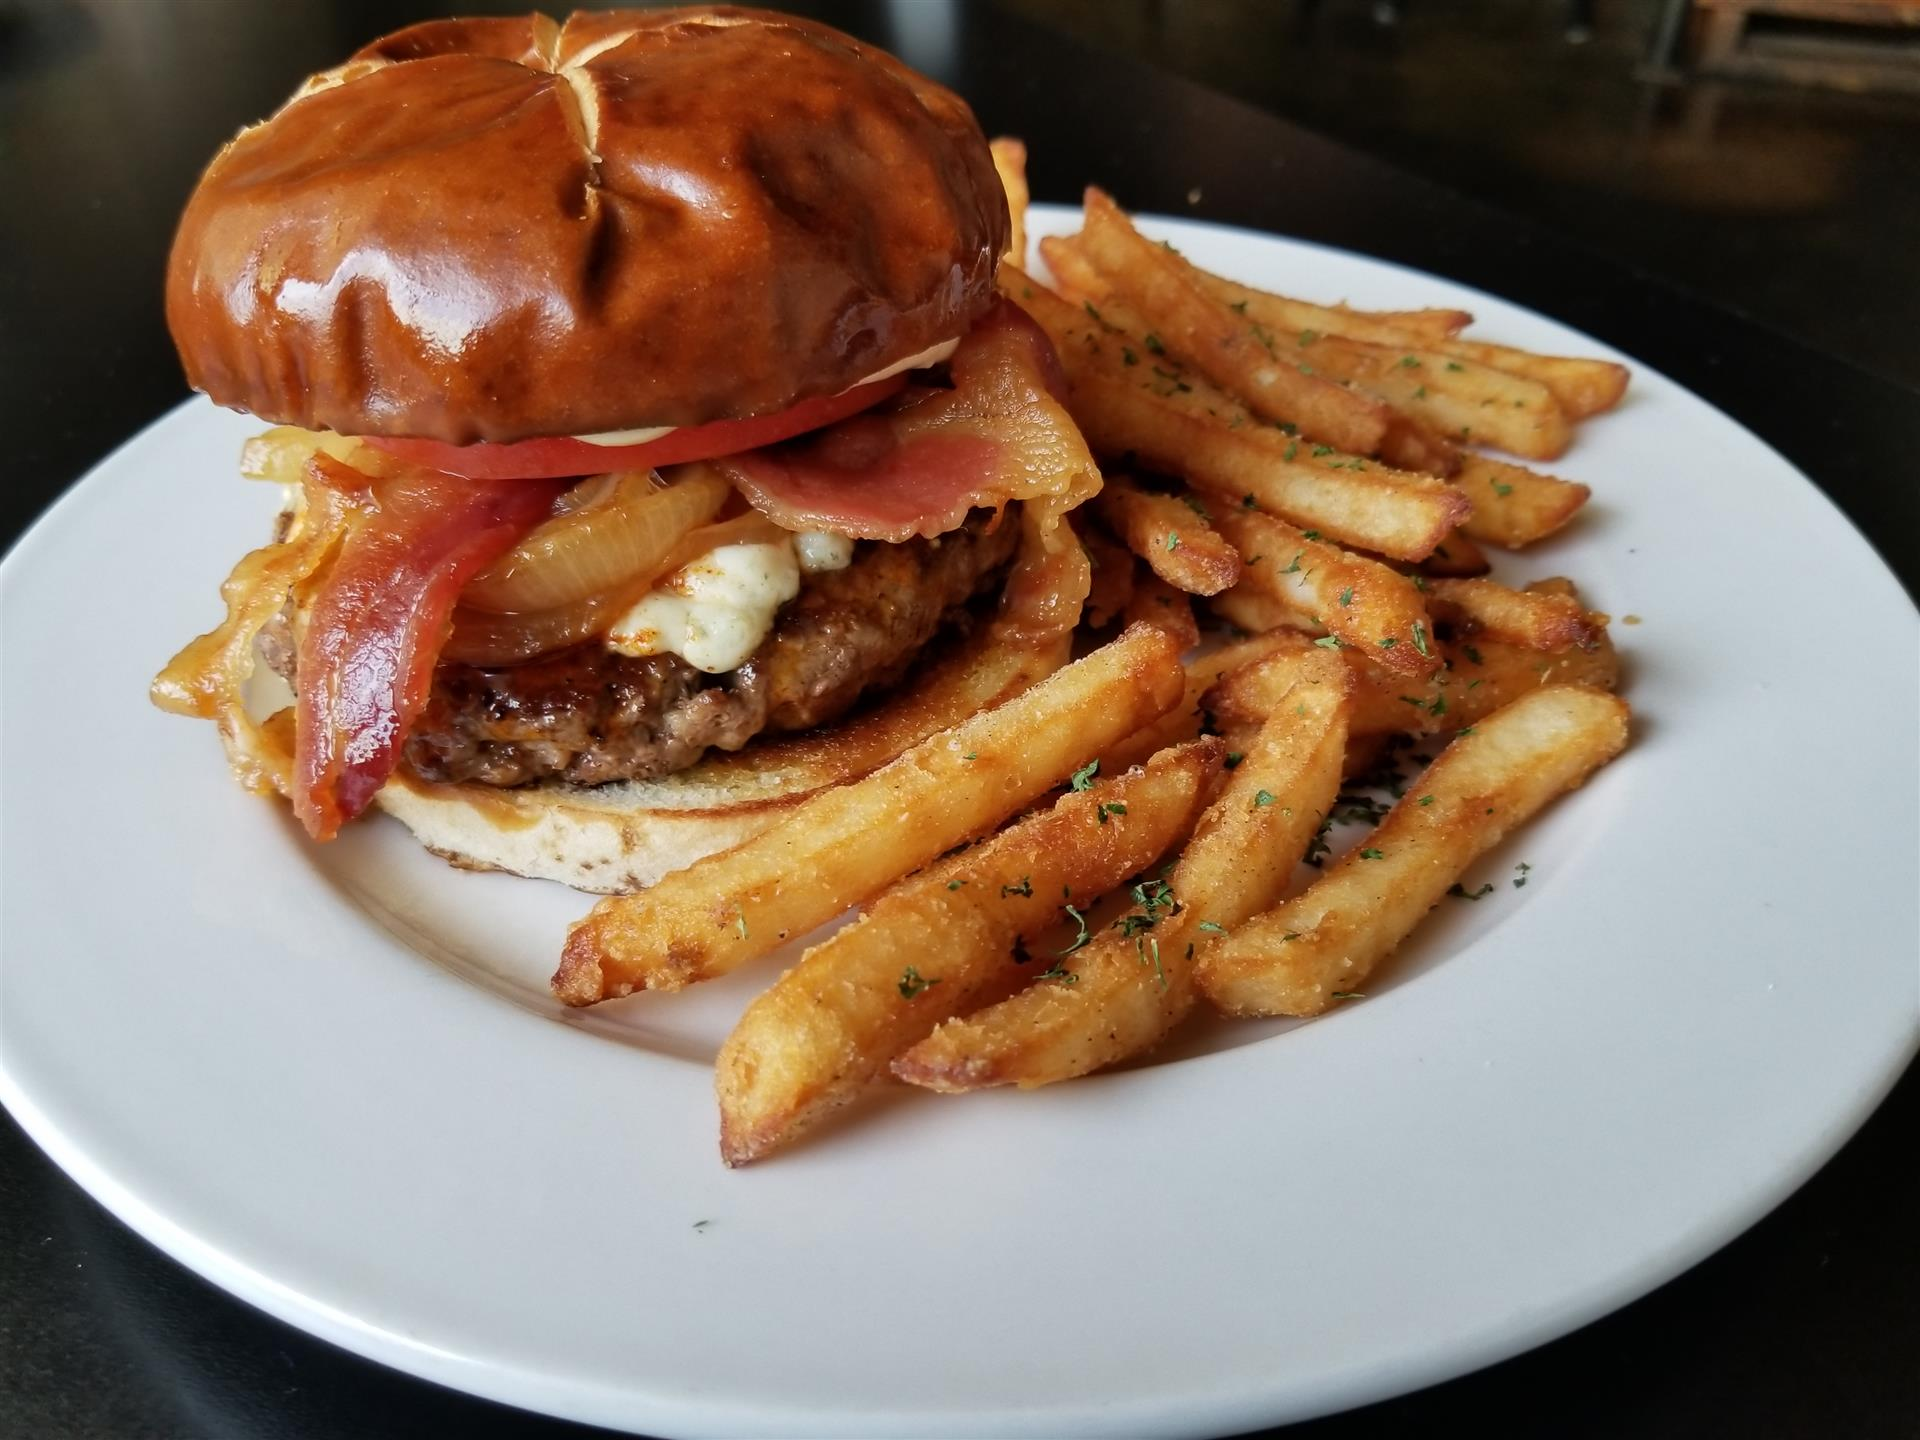 cheeseburger with bacon and tomato with a side of french fries